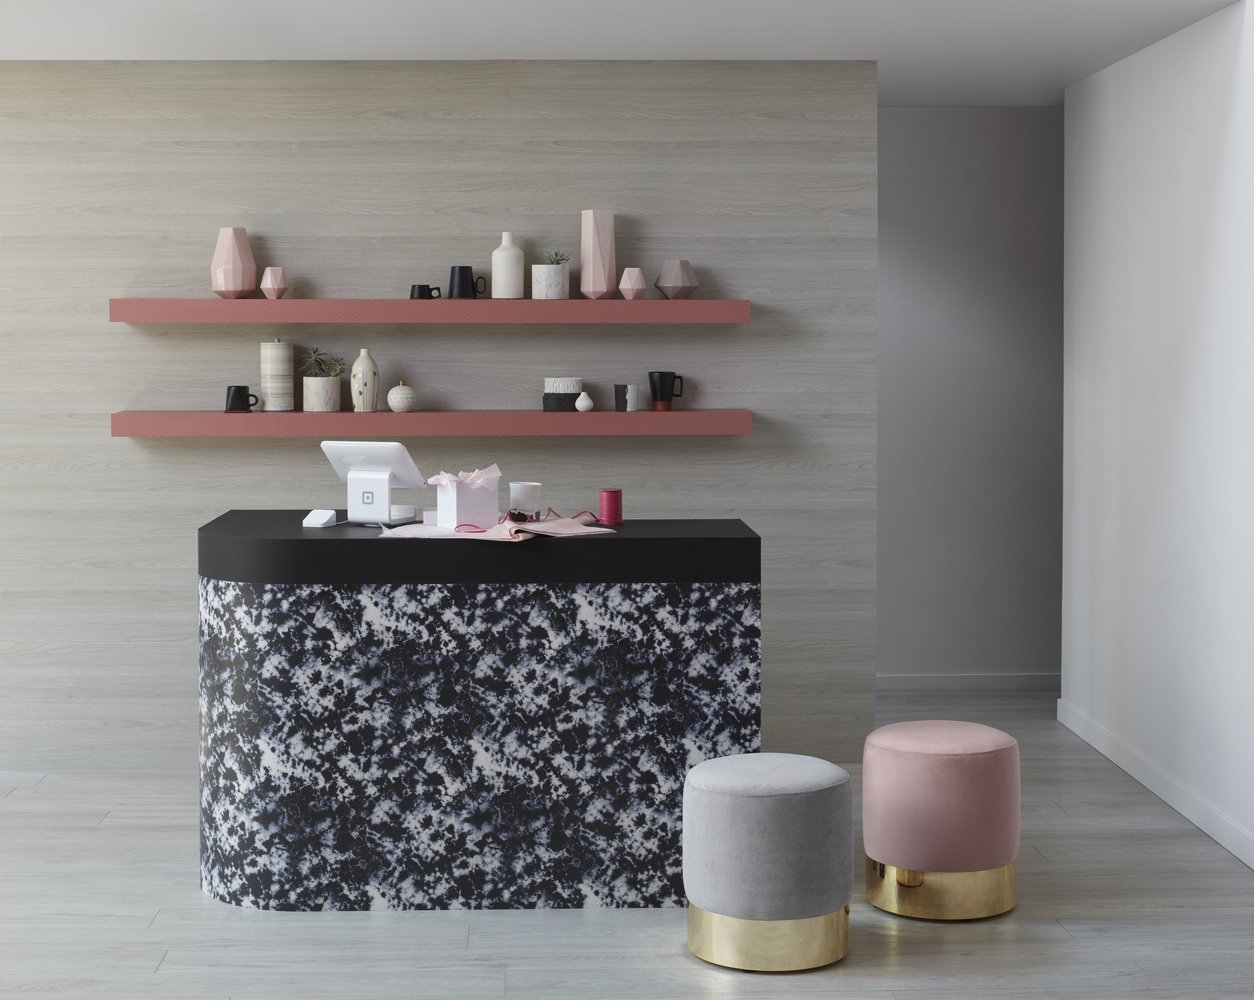 3 Trends Inspiring New Architectural Surfaces